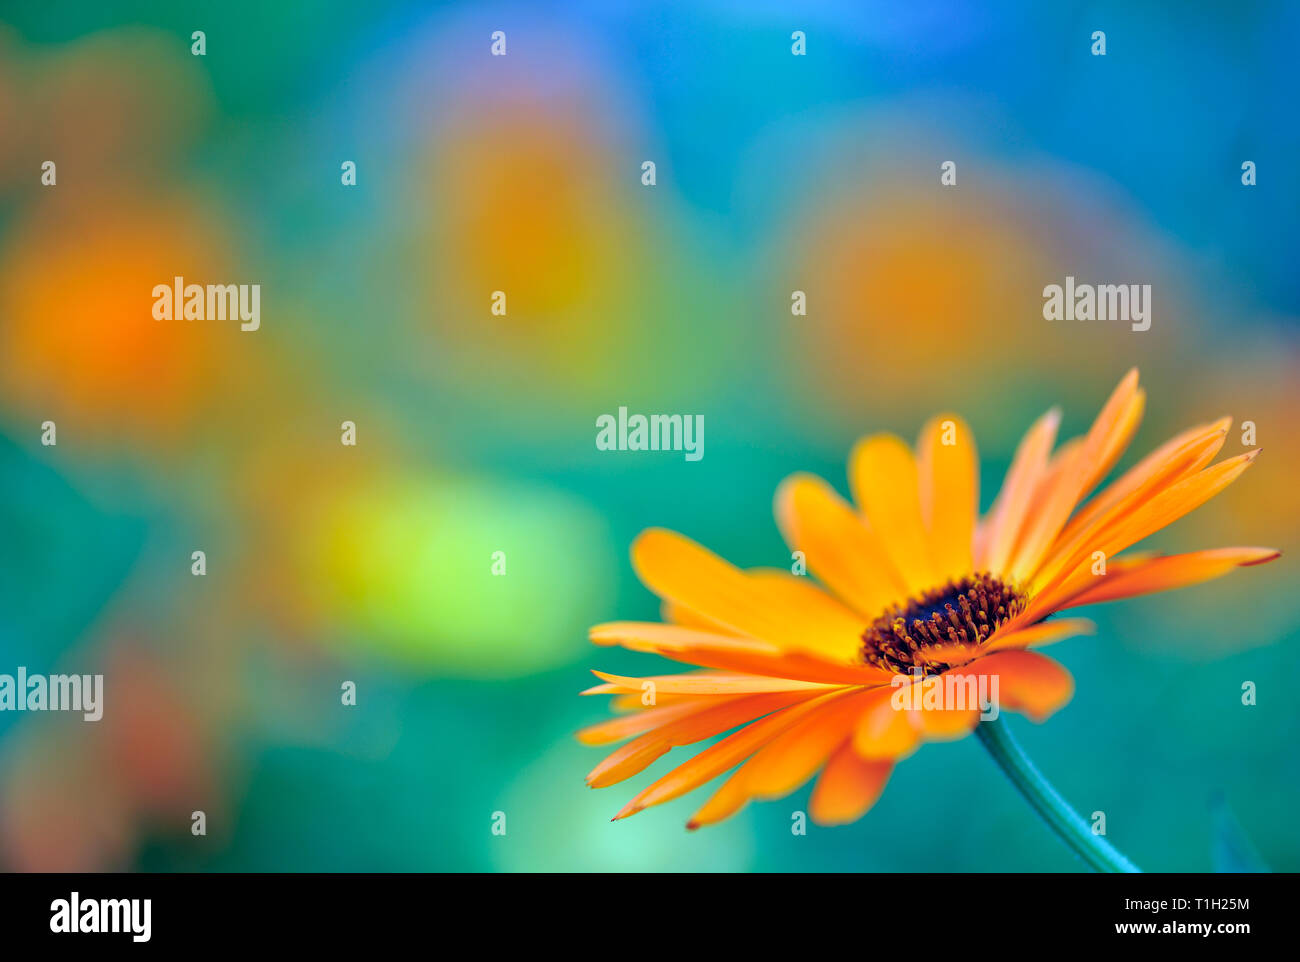 Common marigold Calendula officinalis flower. Selective focus and very shallow depth of field. - Stock Image